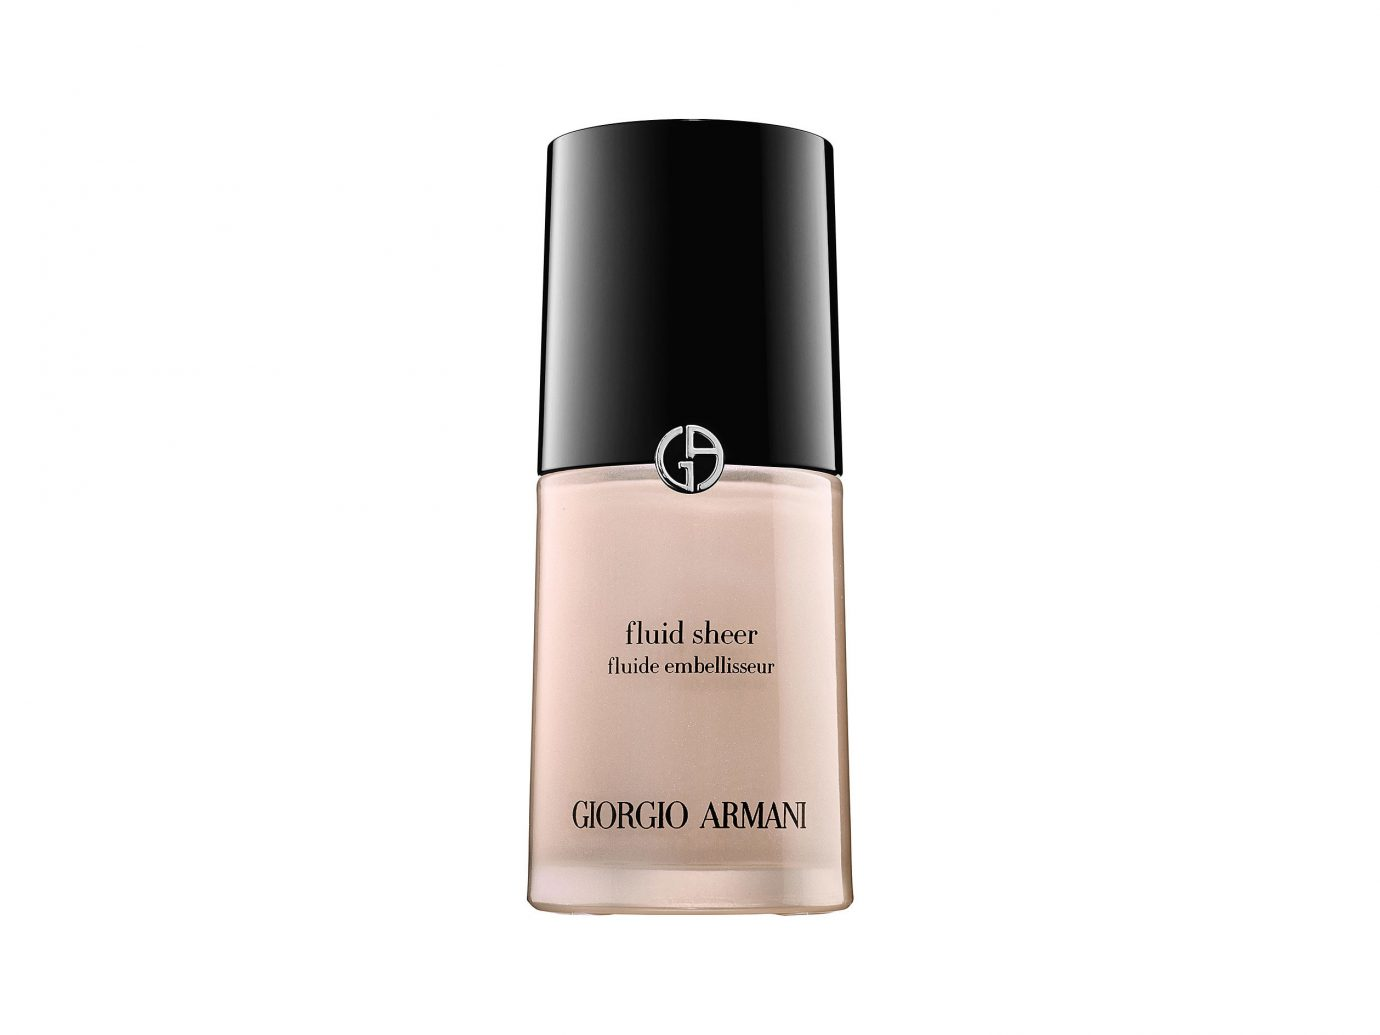 Giorgio Armani Fluid Sheer Illuminator